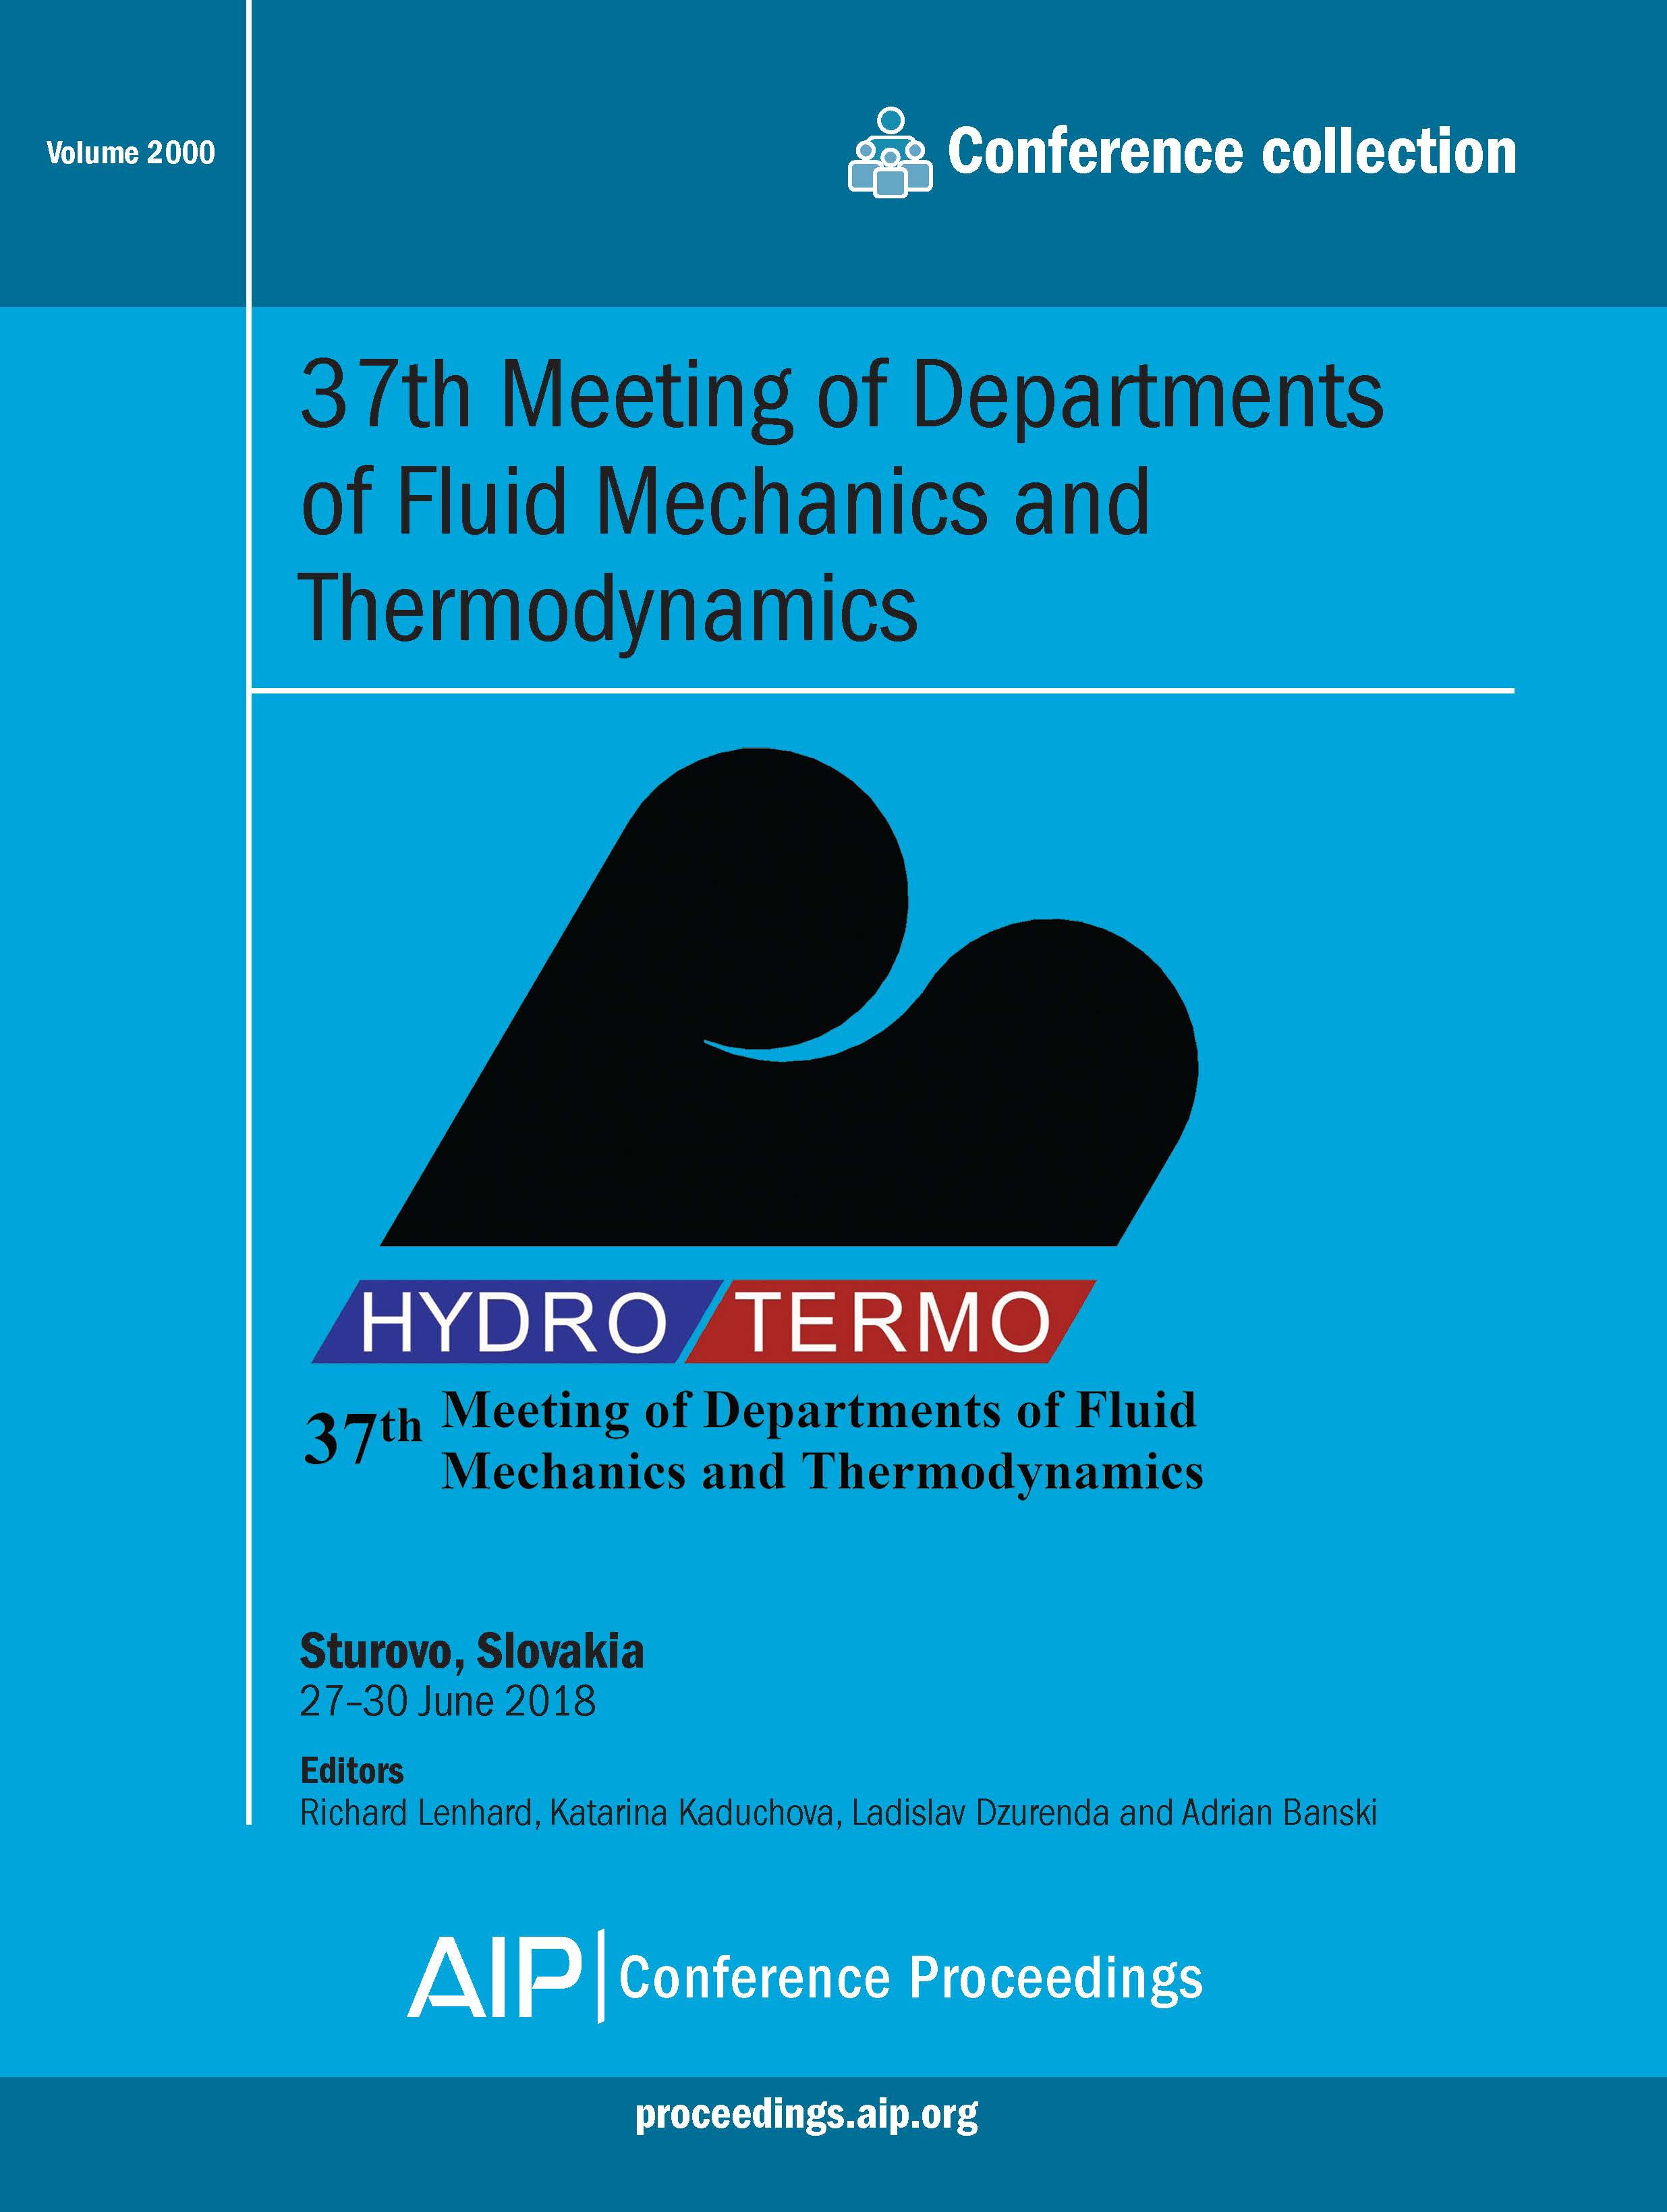 Volume 2000: 37th Meeting of Departments of Fluid Mechanics and